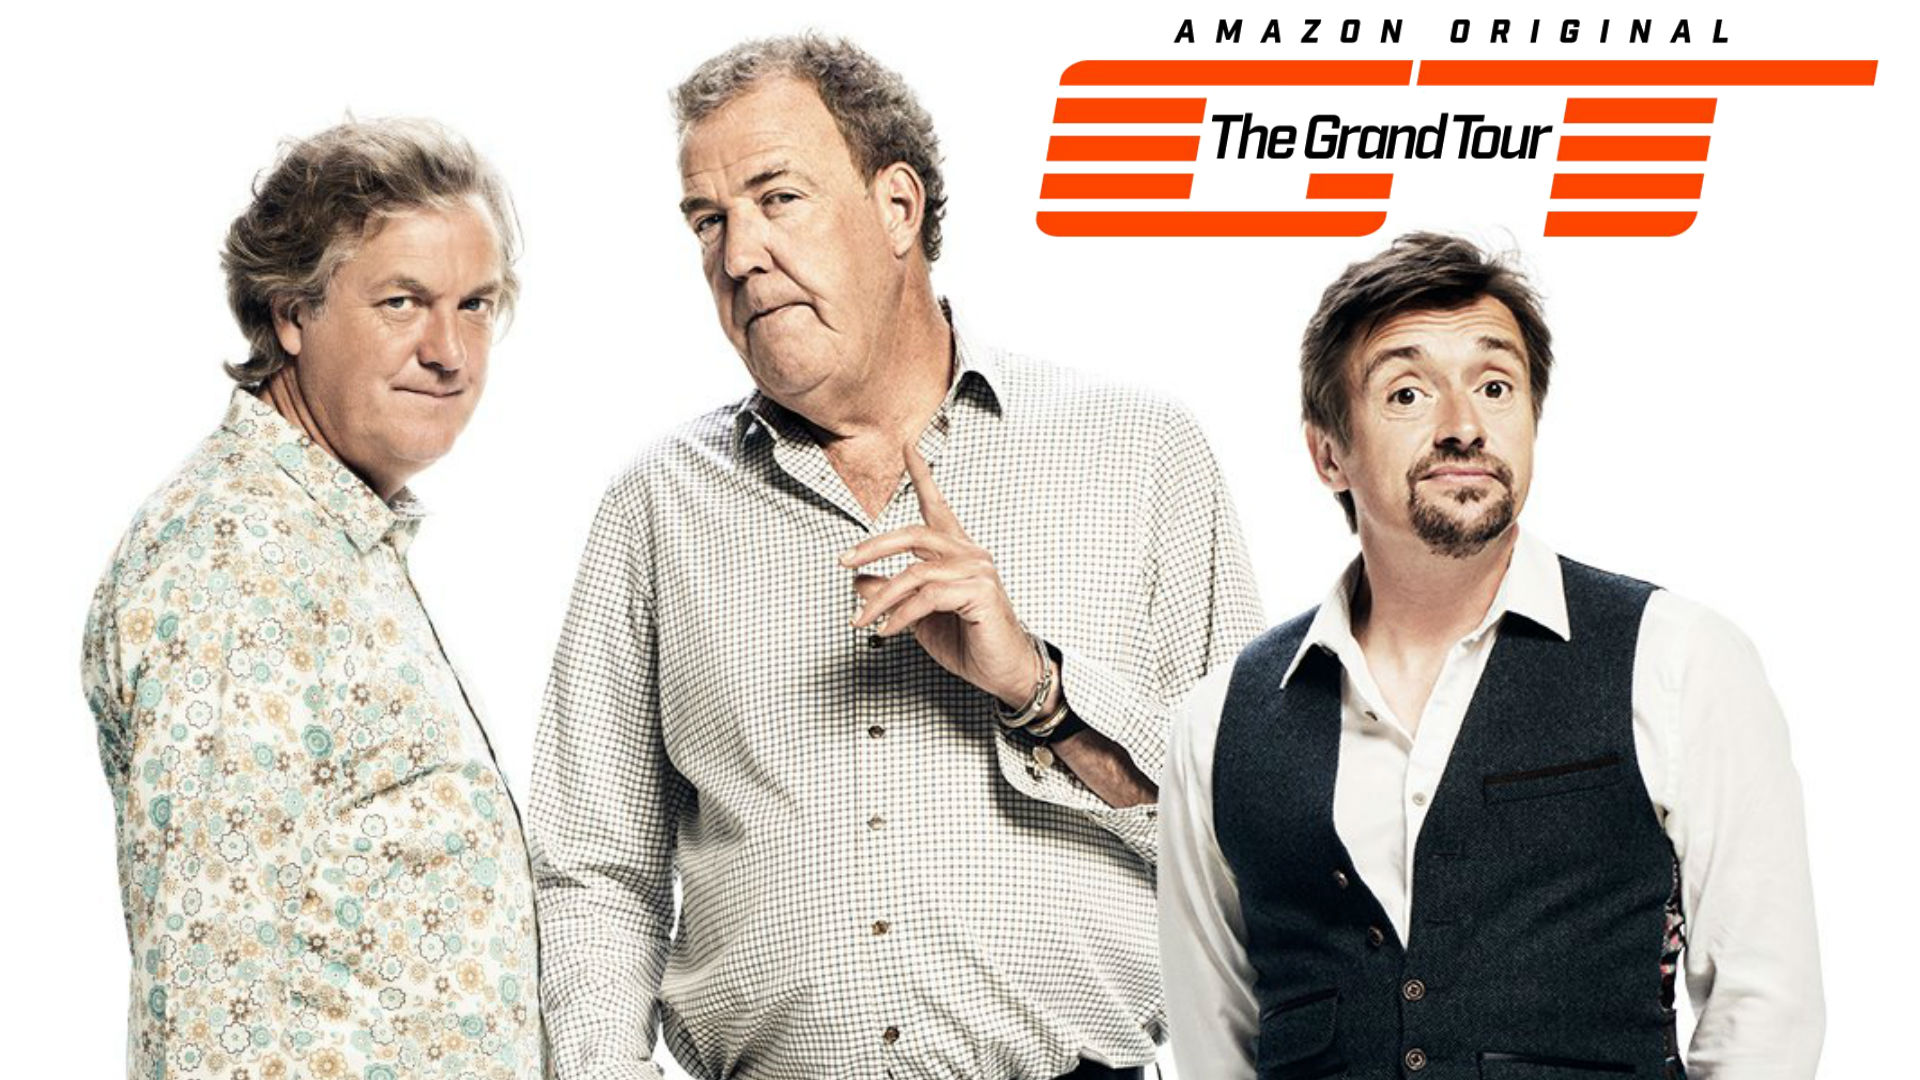 The Grand Tour Jeremy Clarkson James May Richard Hammond logo